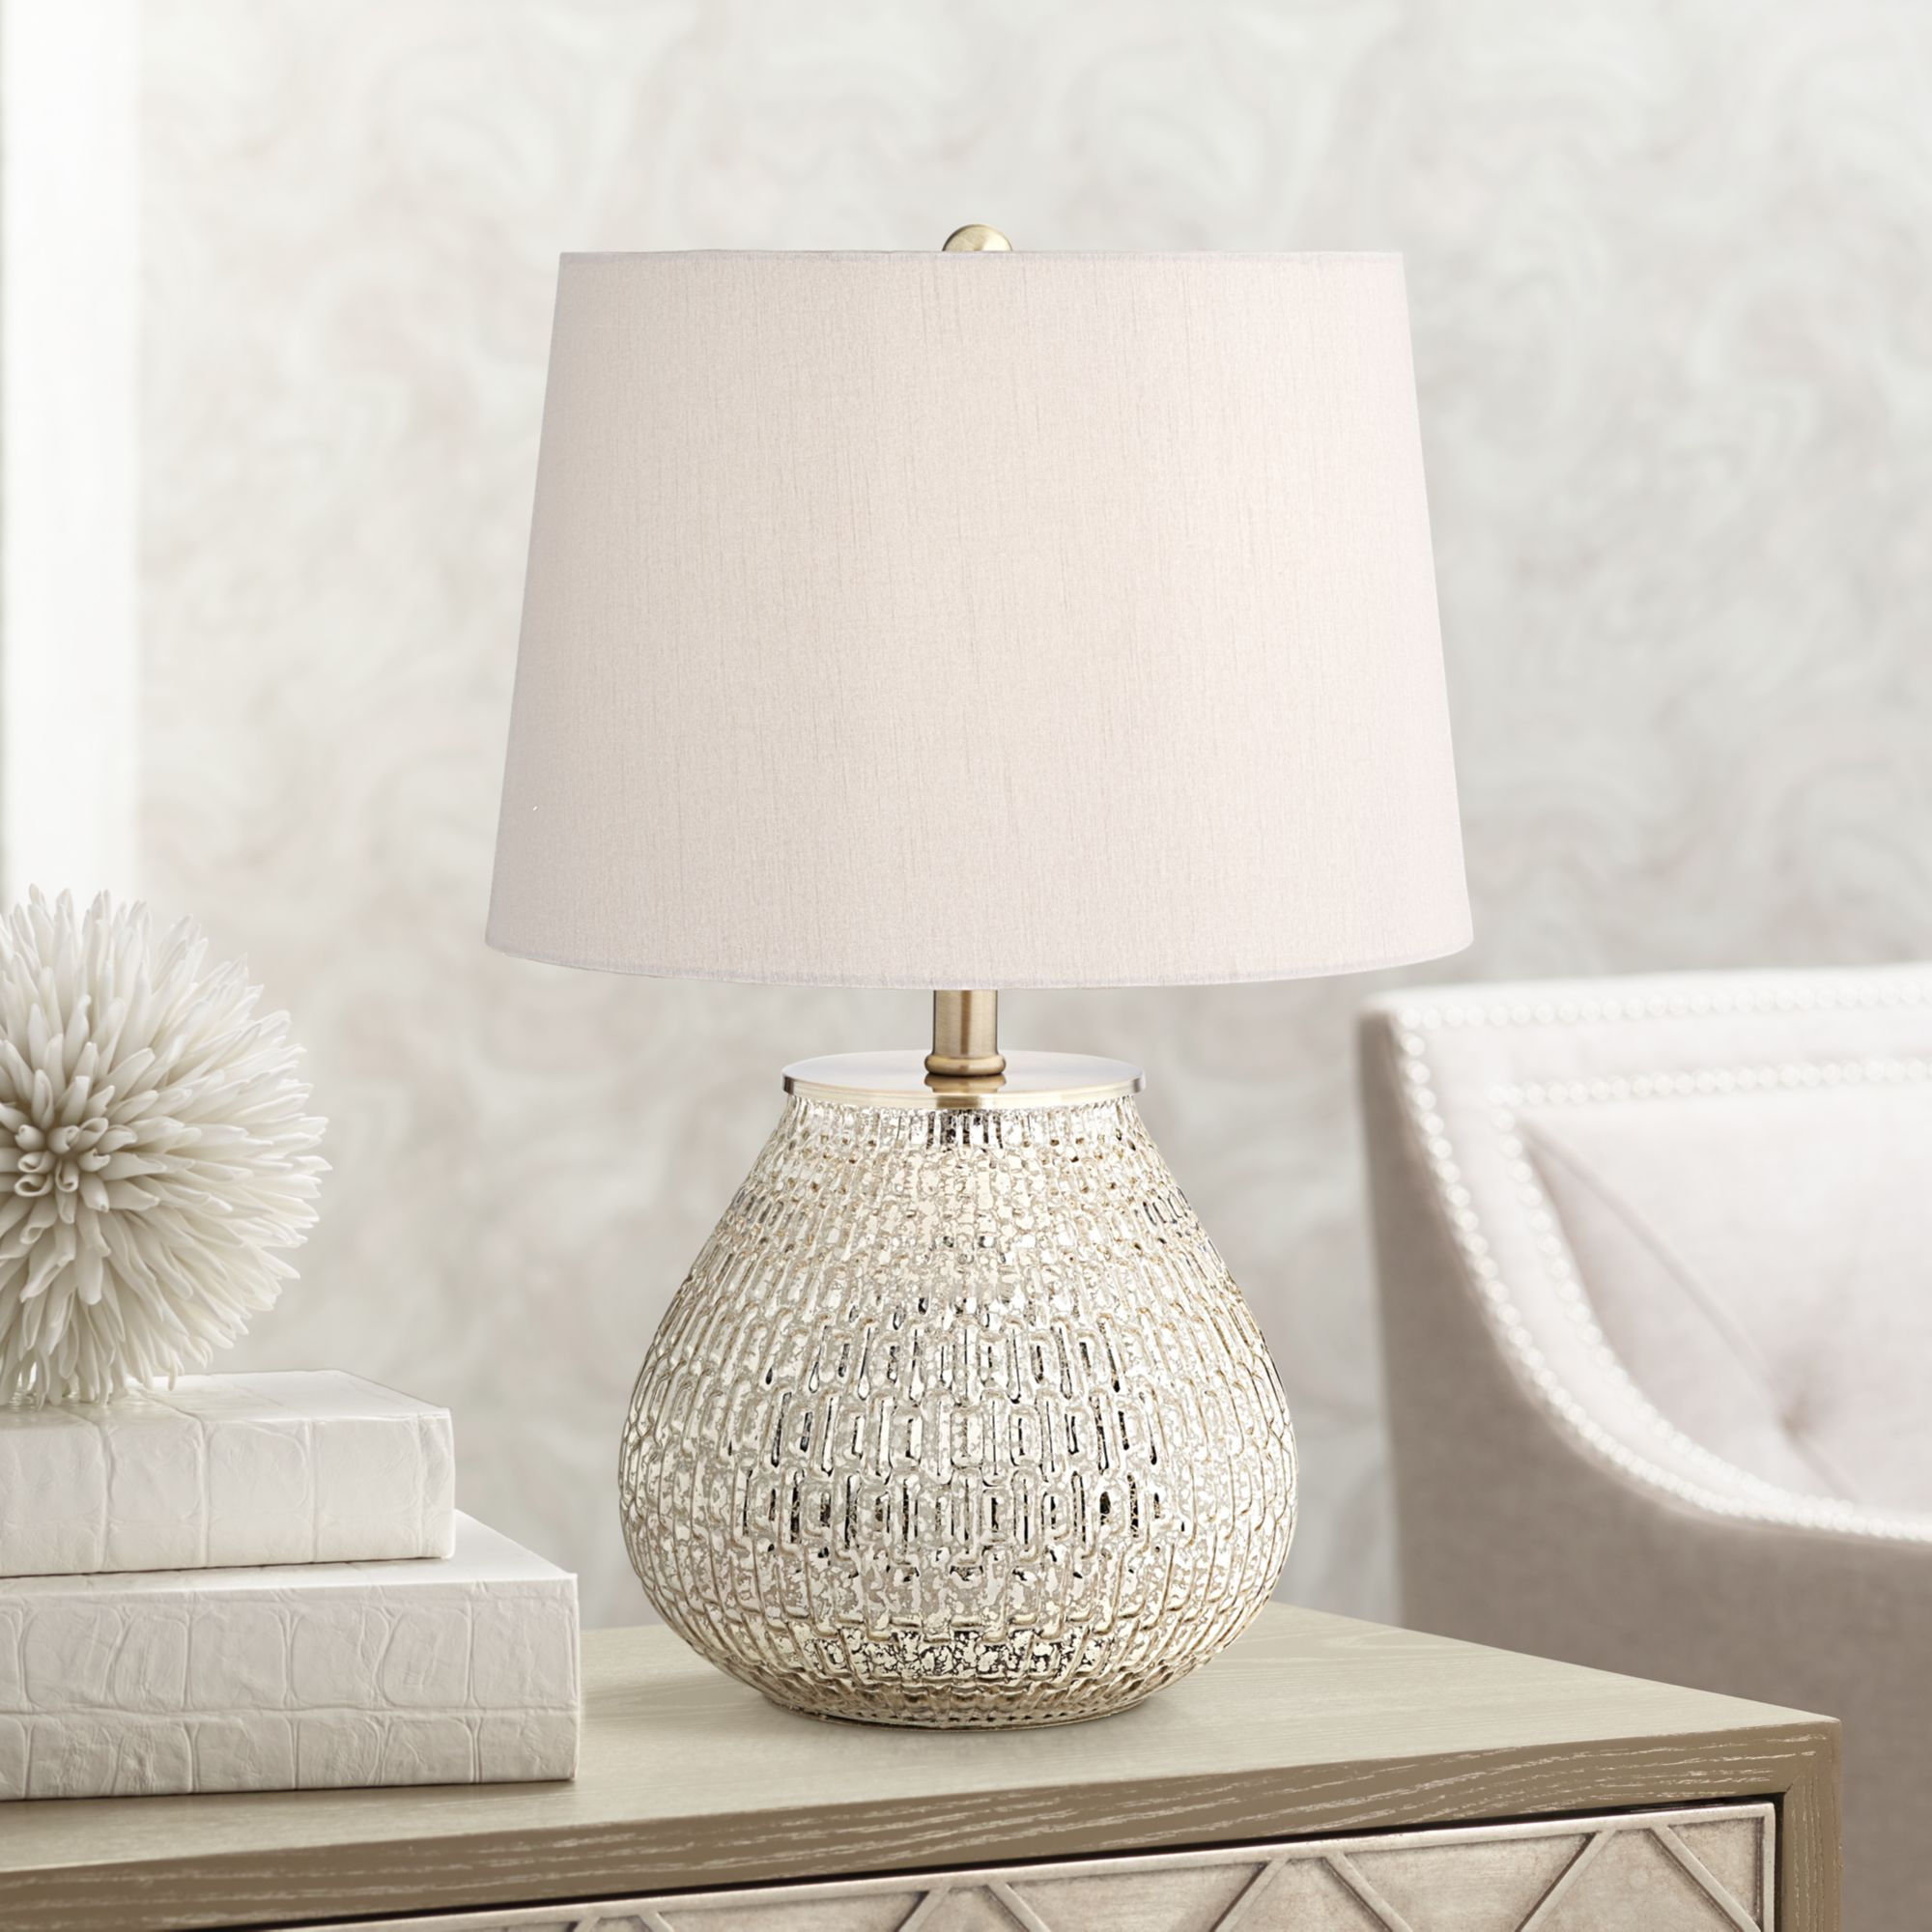 lighting cottage accent table lamp high mercury glass office teardrop gray drum shade for bedroom bedside nightstand antique dining room metal side tables living rattan drinks